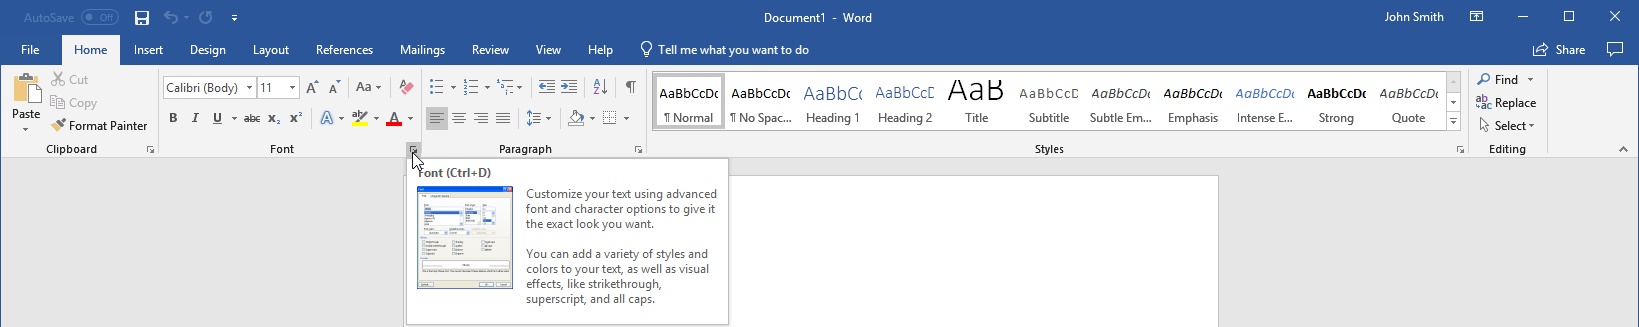 getting started with word 10